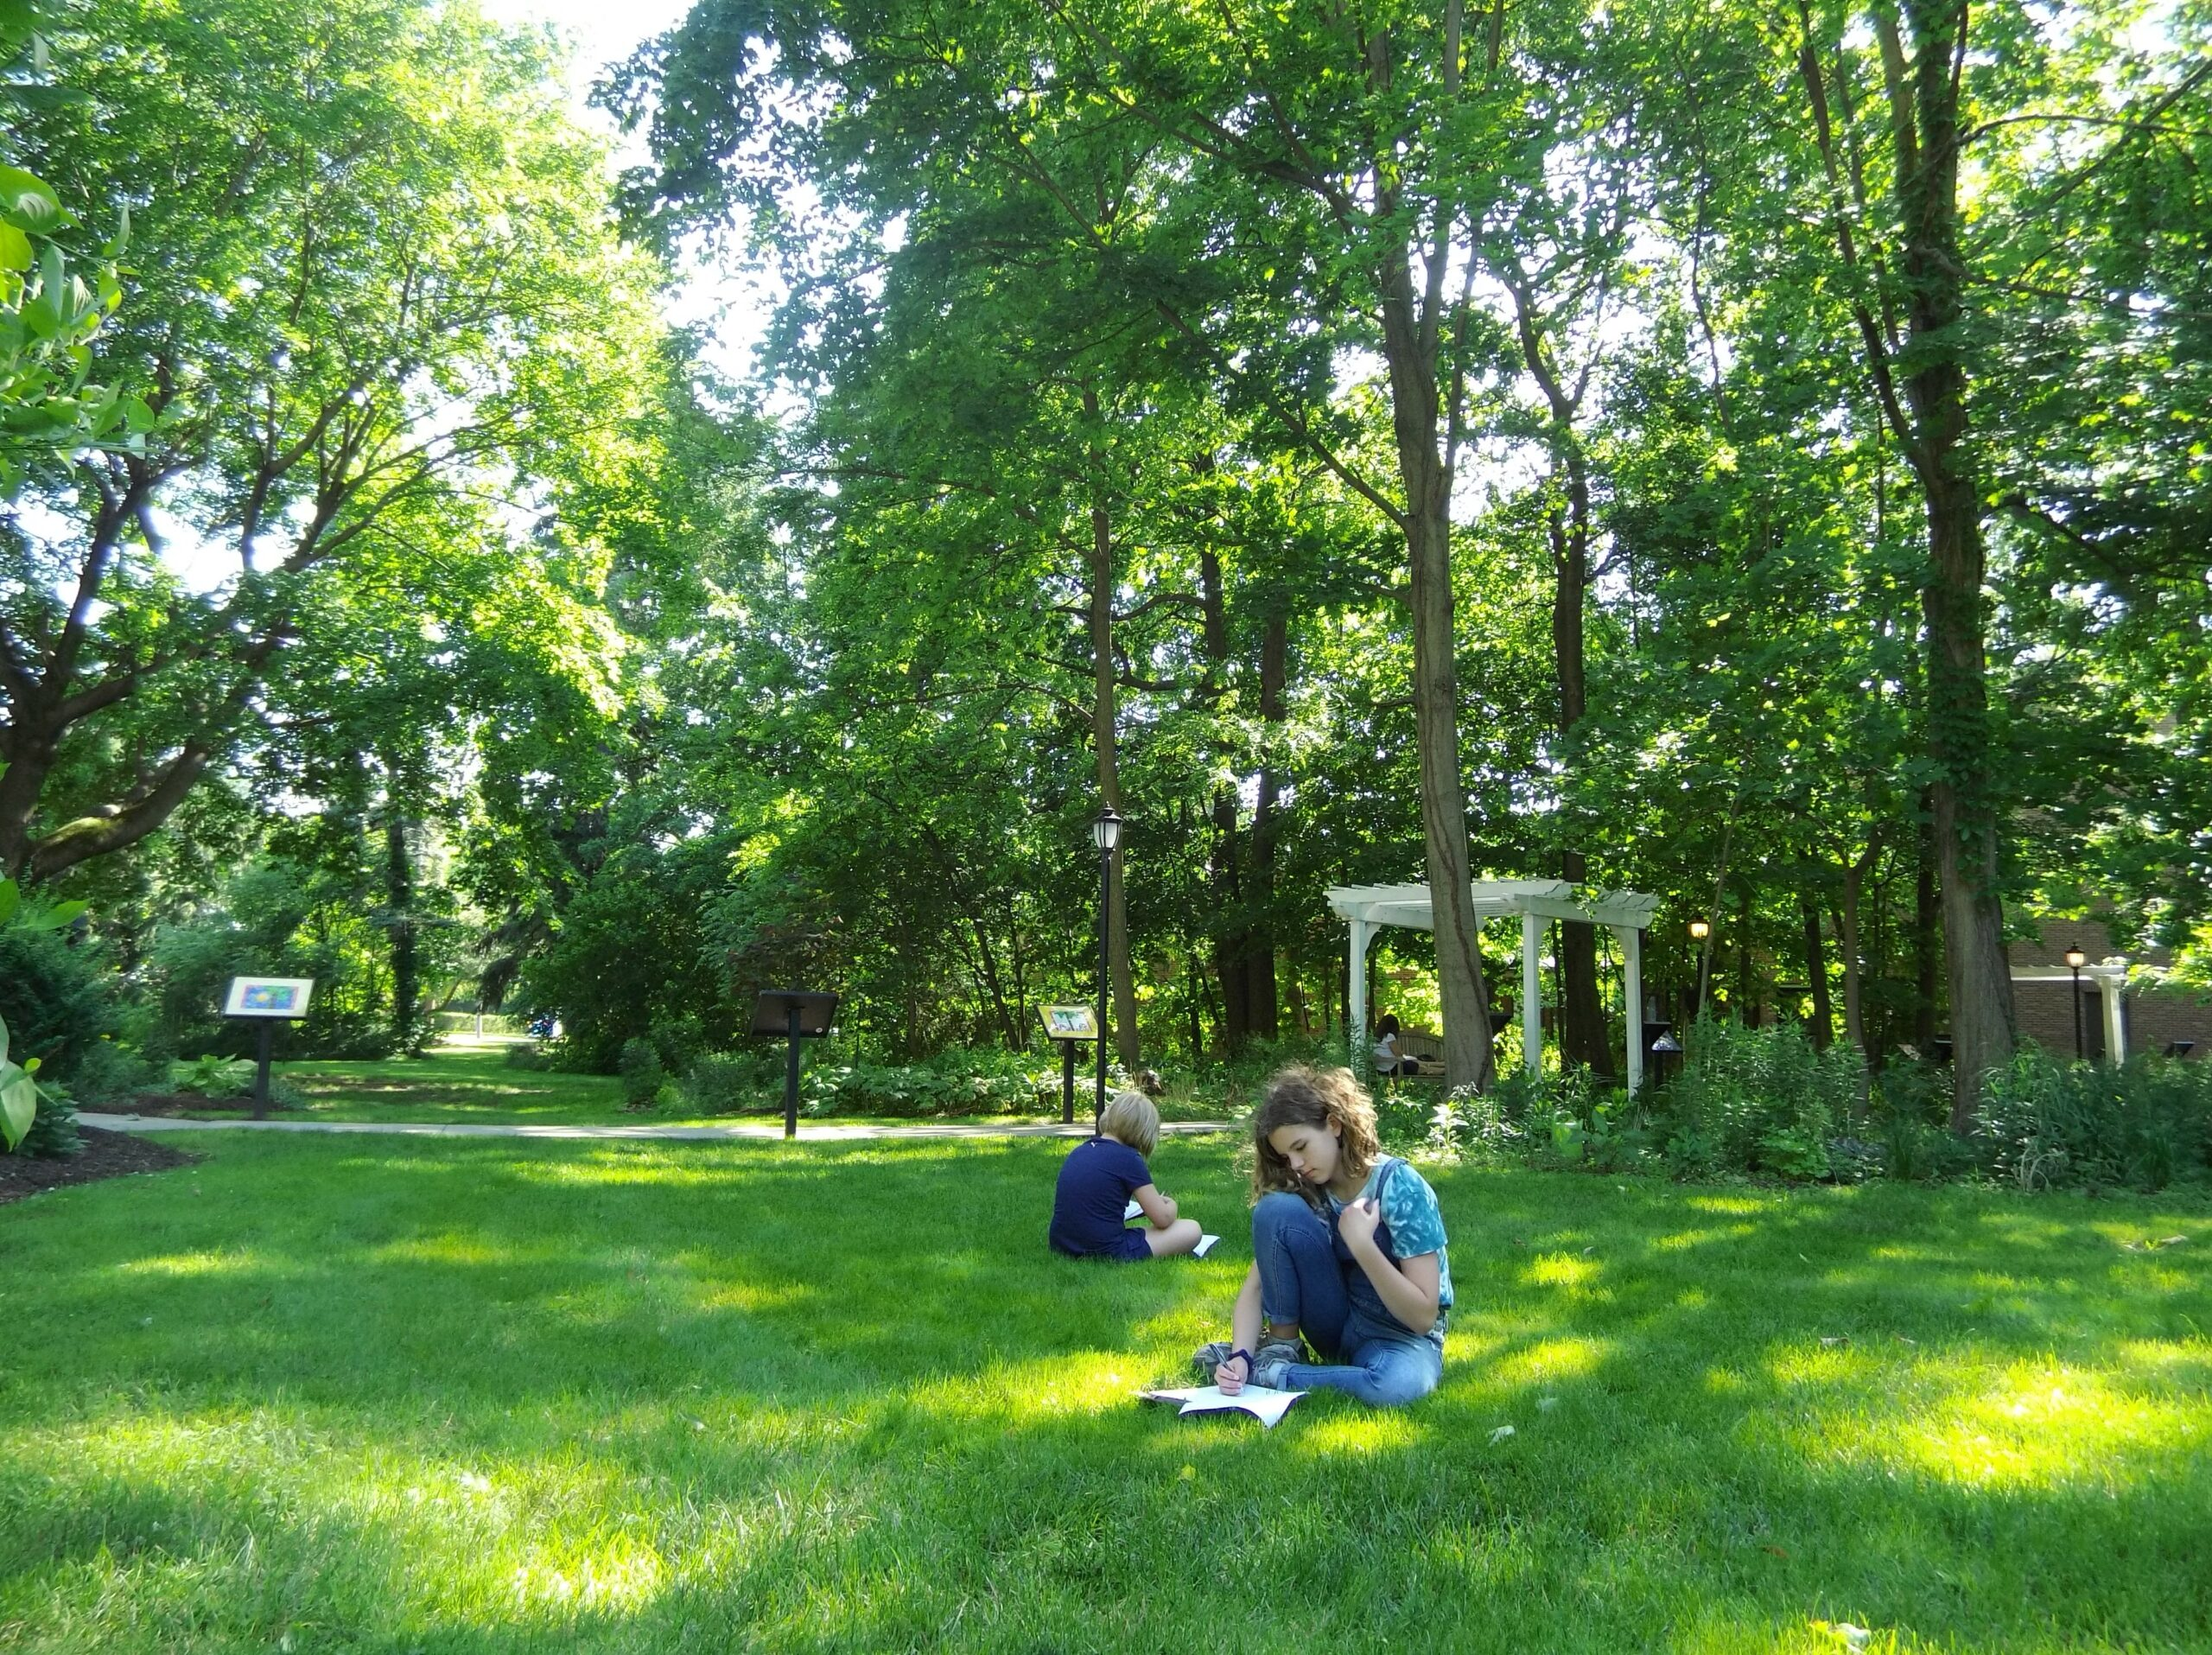 Teens Writing in journals while sitting on the Read Lawn.